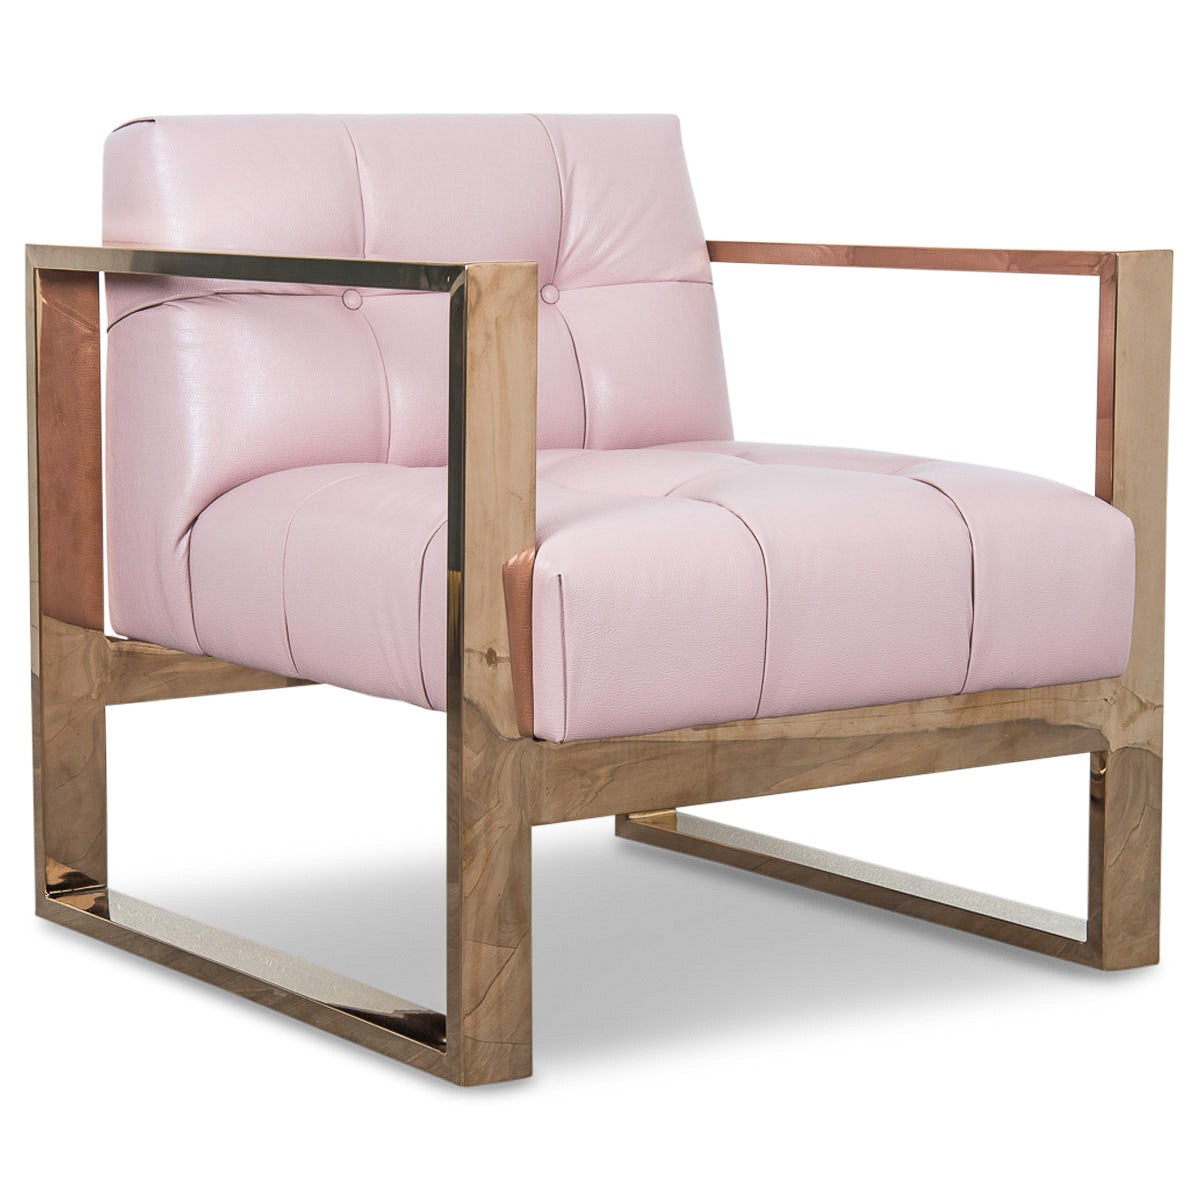 Kube Chair in Rose Gold and Blush Faux Leather - ModShop1.com